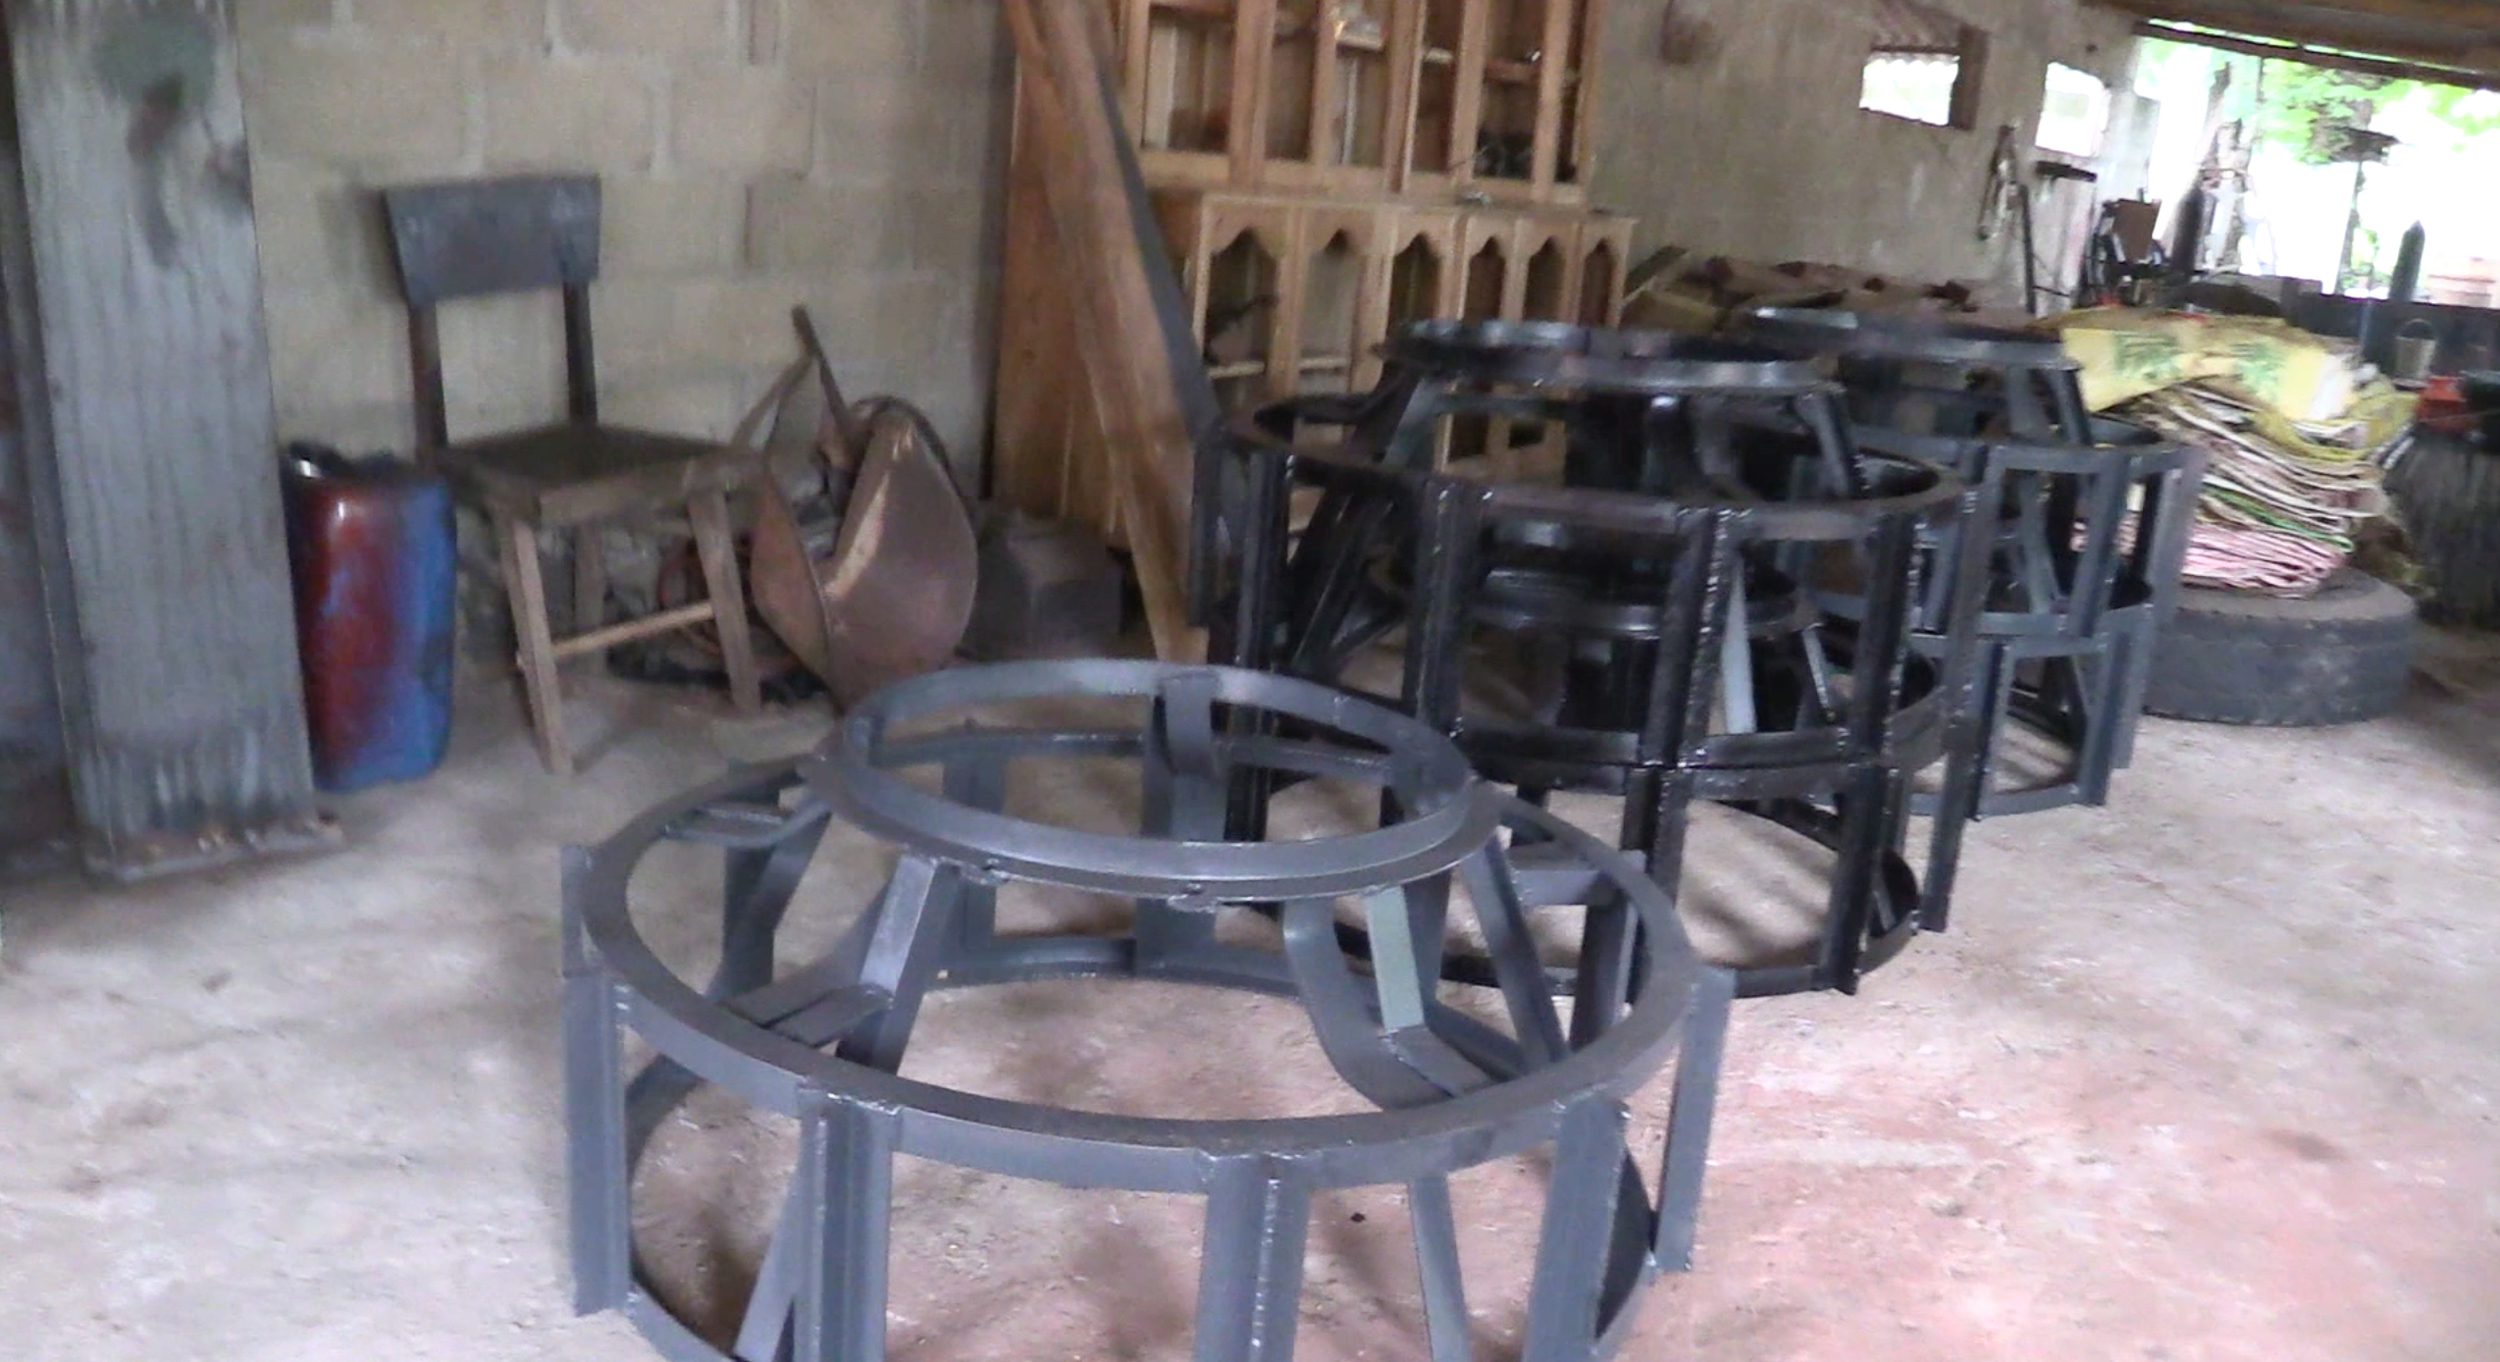 Tractor wheels for the rice paddies